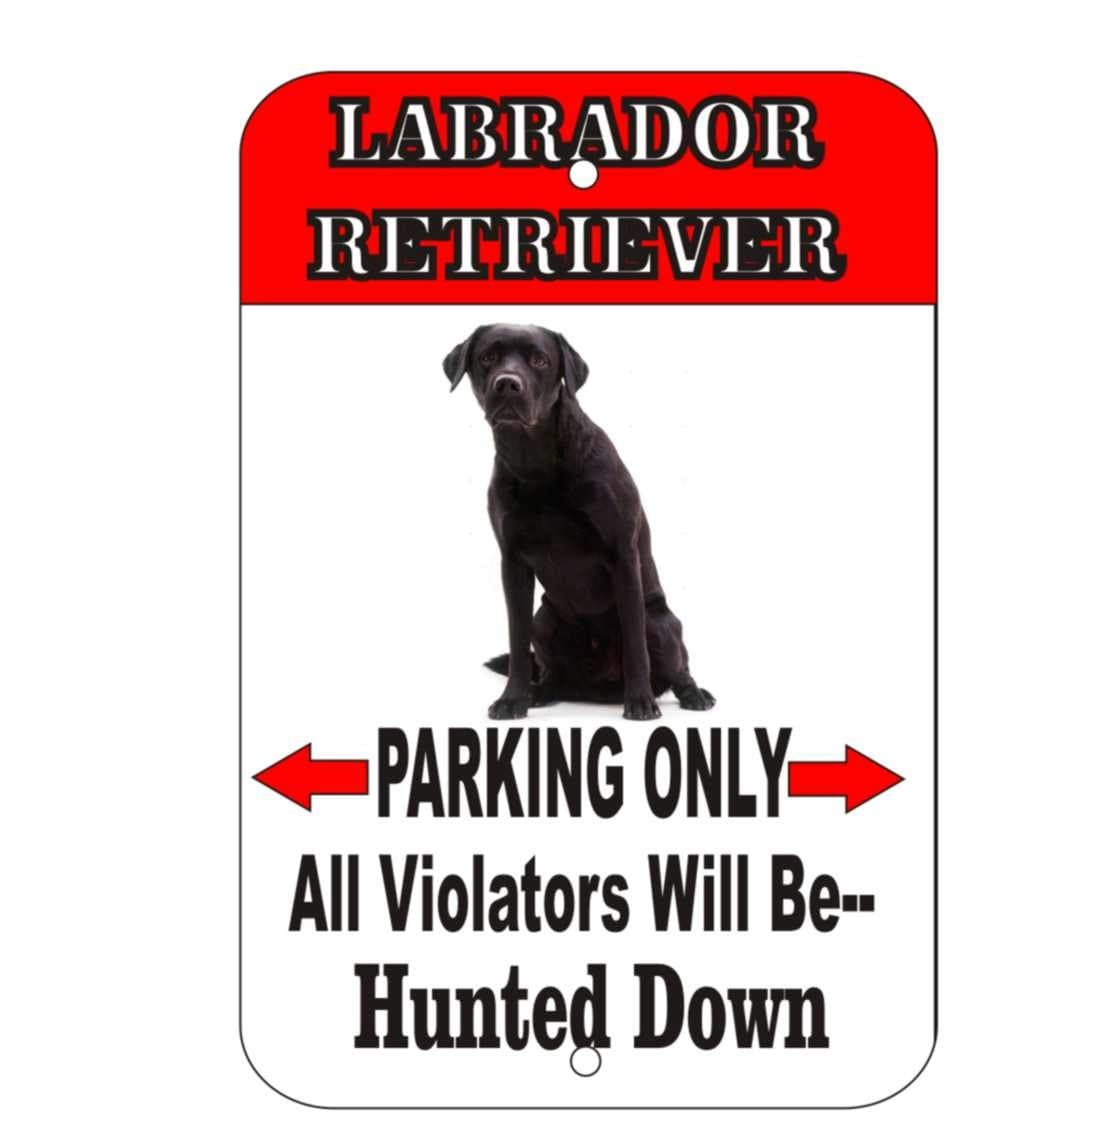 Labrador Retriever Sign, Black Lab Sign, Chocolate Lab. Temple Signs. Fiesta Signs Of Stroke. Basketball Foul Signs. Chemical Hazard Signs Of Stroke. Aum Signs. Food Cartoon Signs. Renal Hydatid Cyst Signs Of Stroke. Pointless Signs